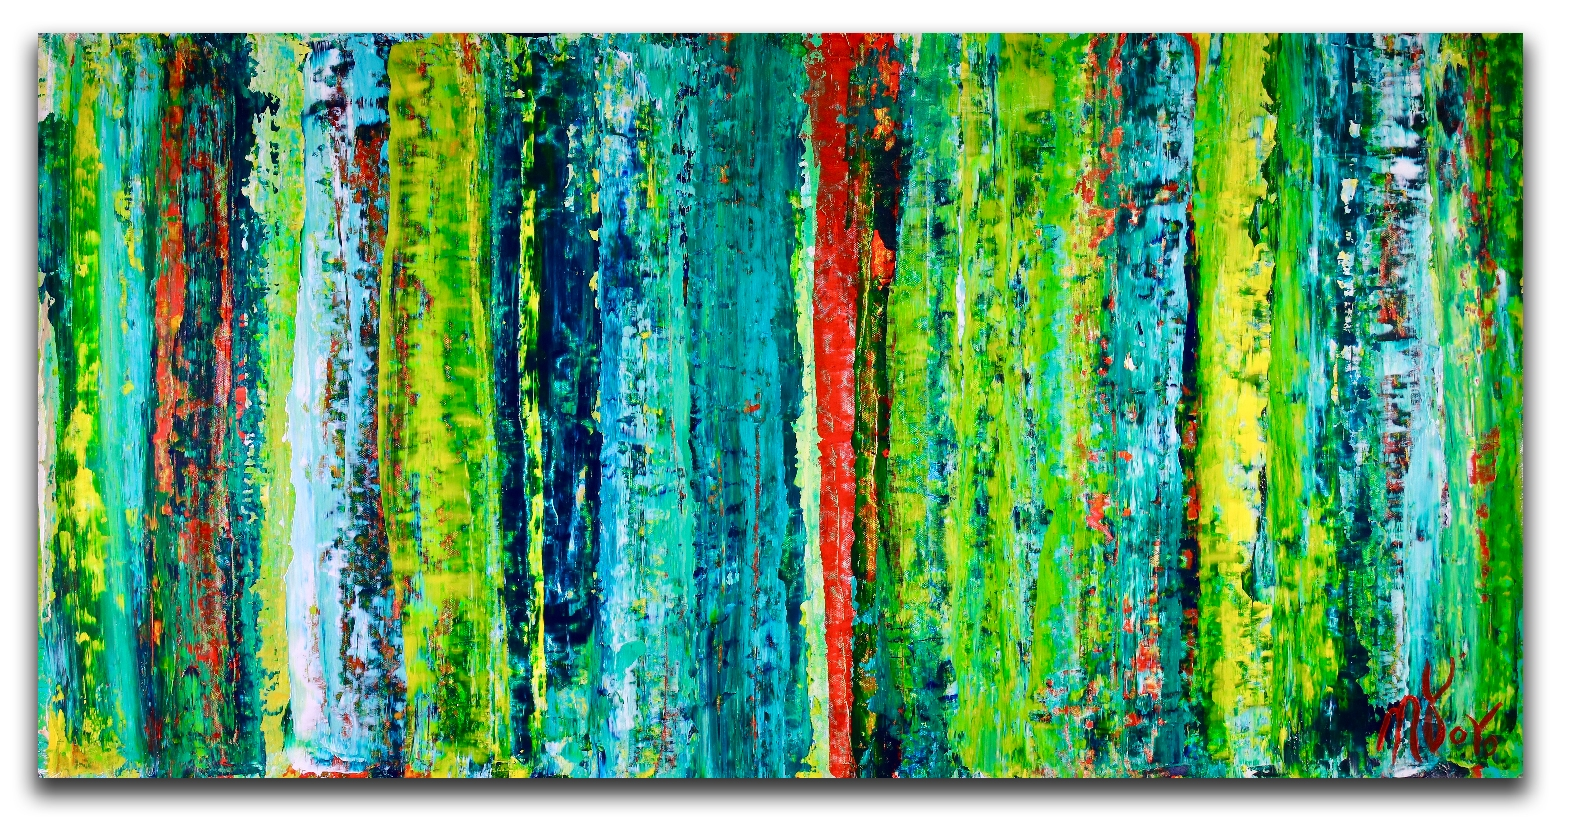 Landscape expressions No.3 (2018) Expressionistic Abstract Acrylic painting by Nestor Toro